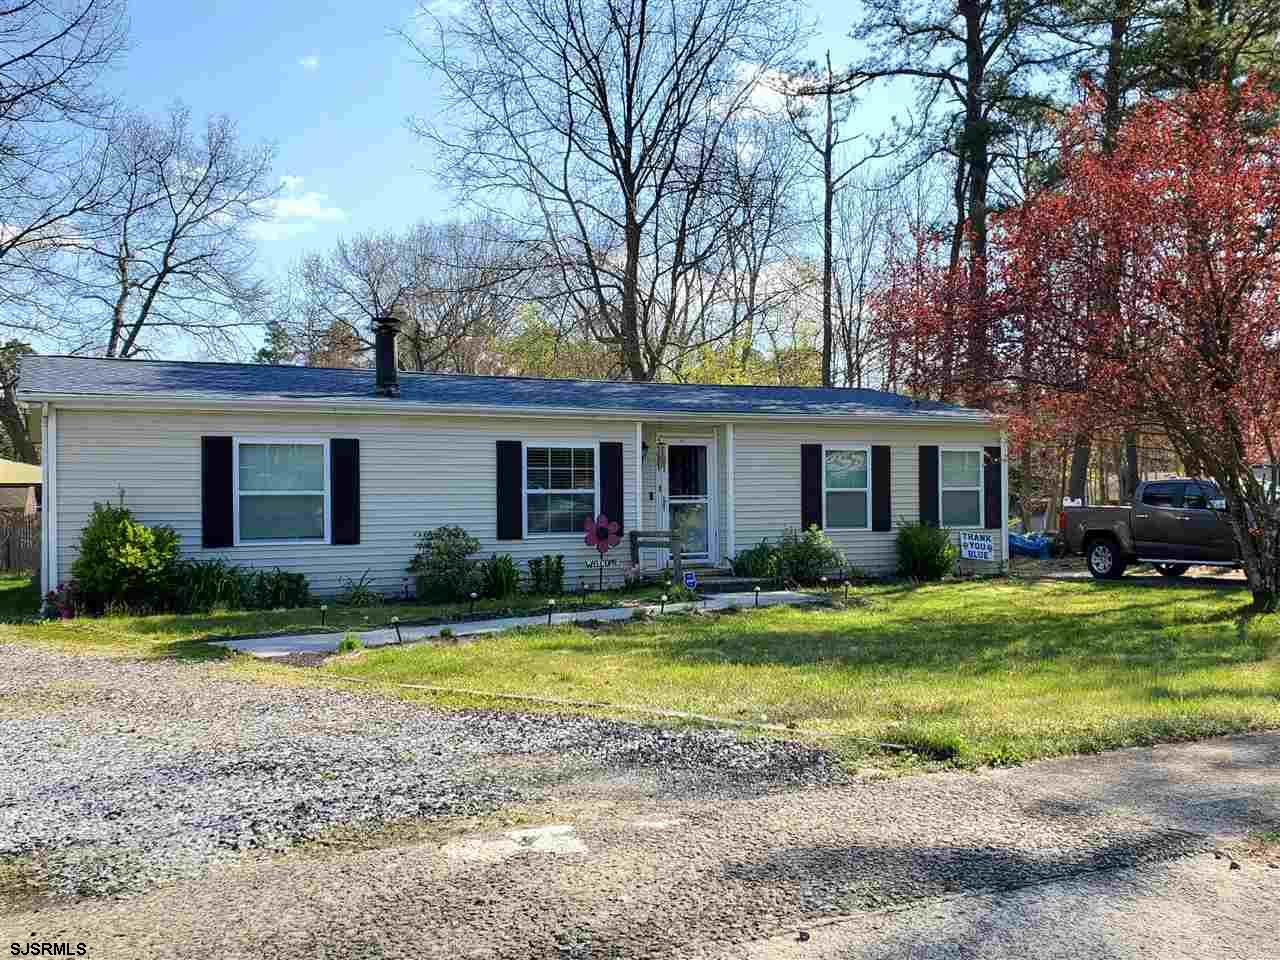 Adorable 3 bedroom 2 bath ranch in desirable Mullica Township, near recreation park and school.Totally updated , this home has newer flooring, kitchen, heat and air and features a wood burning fireplace in the great room! This home sits on a large corner lot, and has a huge deck for entertaining. Also included is a 28 x 12 storage shed. Schools are highly rated Cedar Creek and Mullica Township elementary.